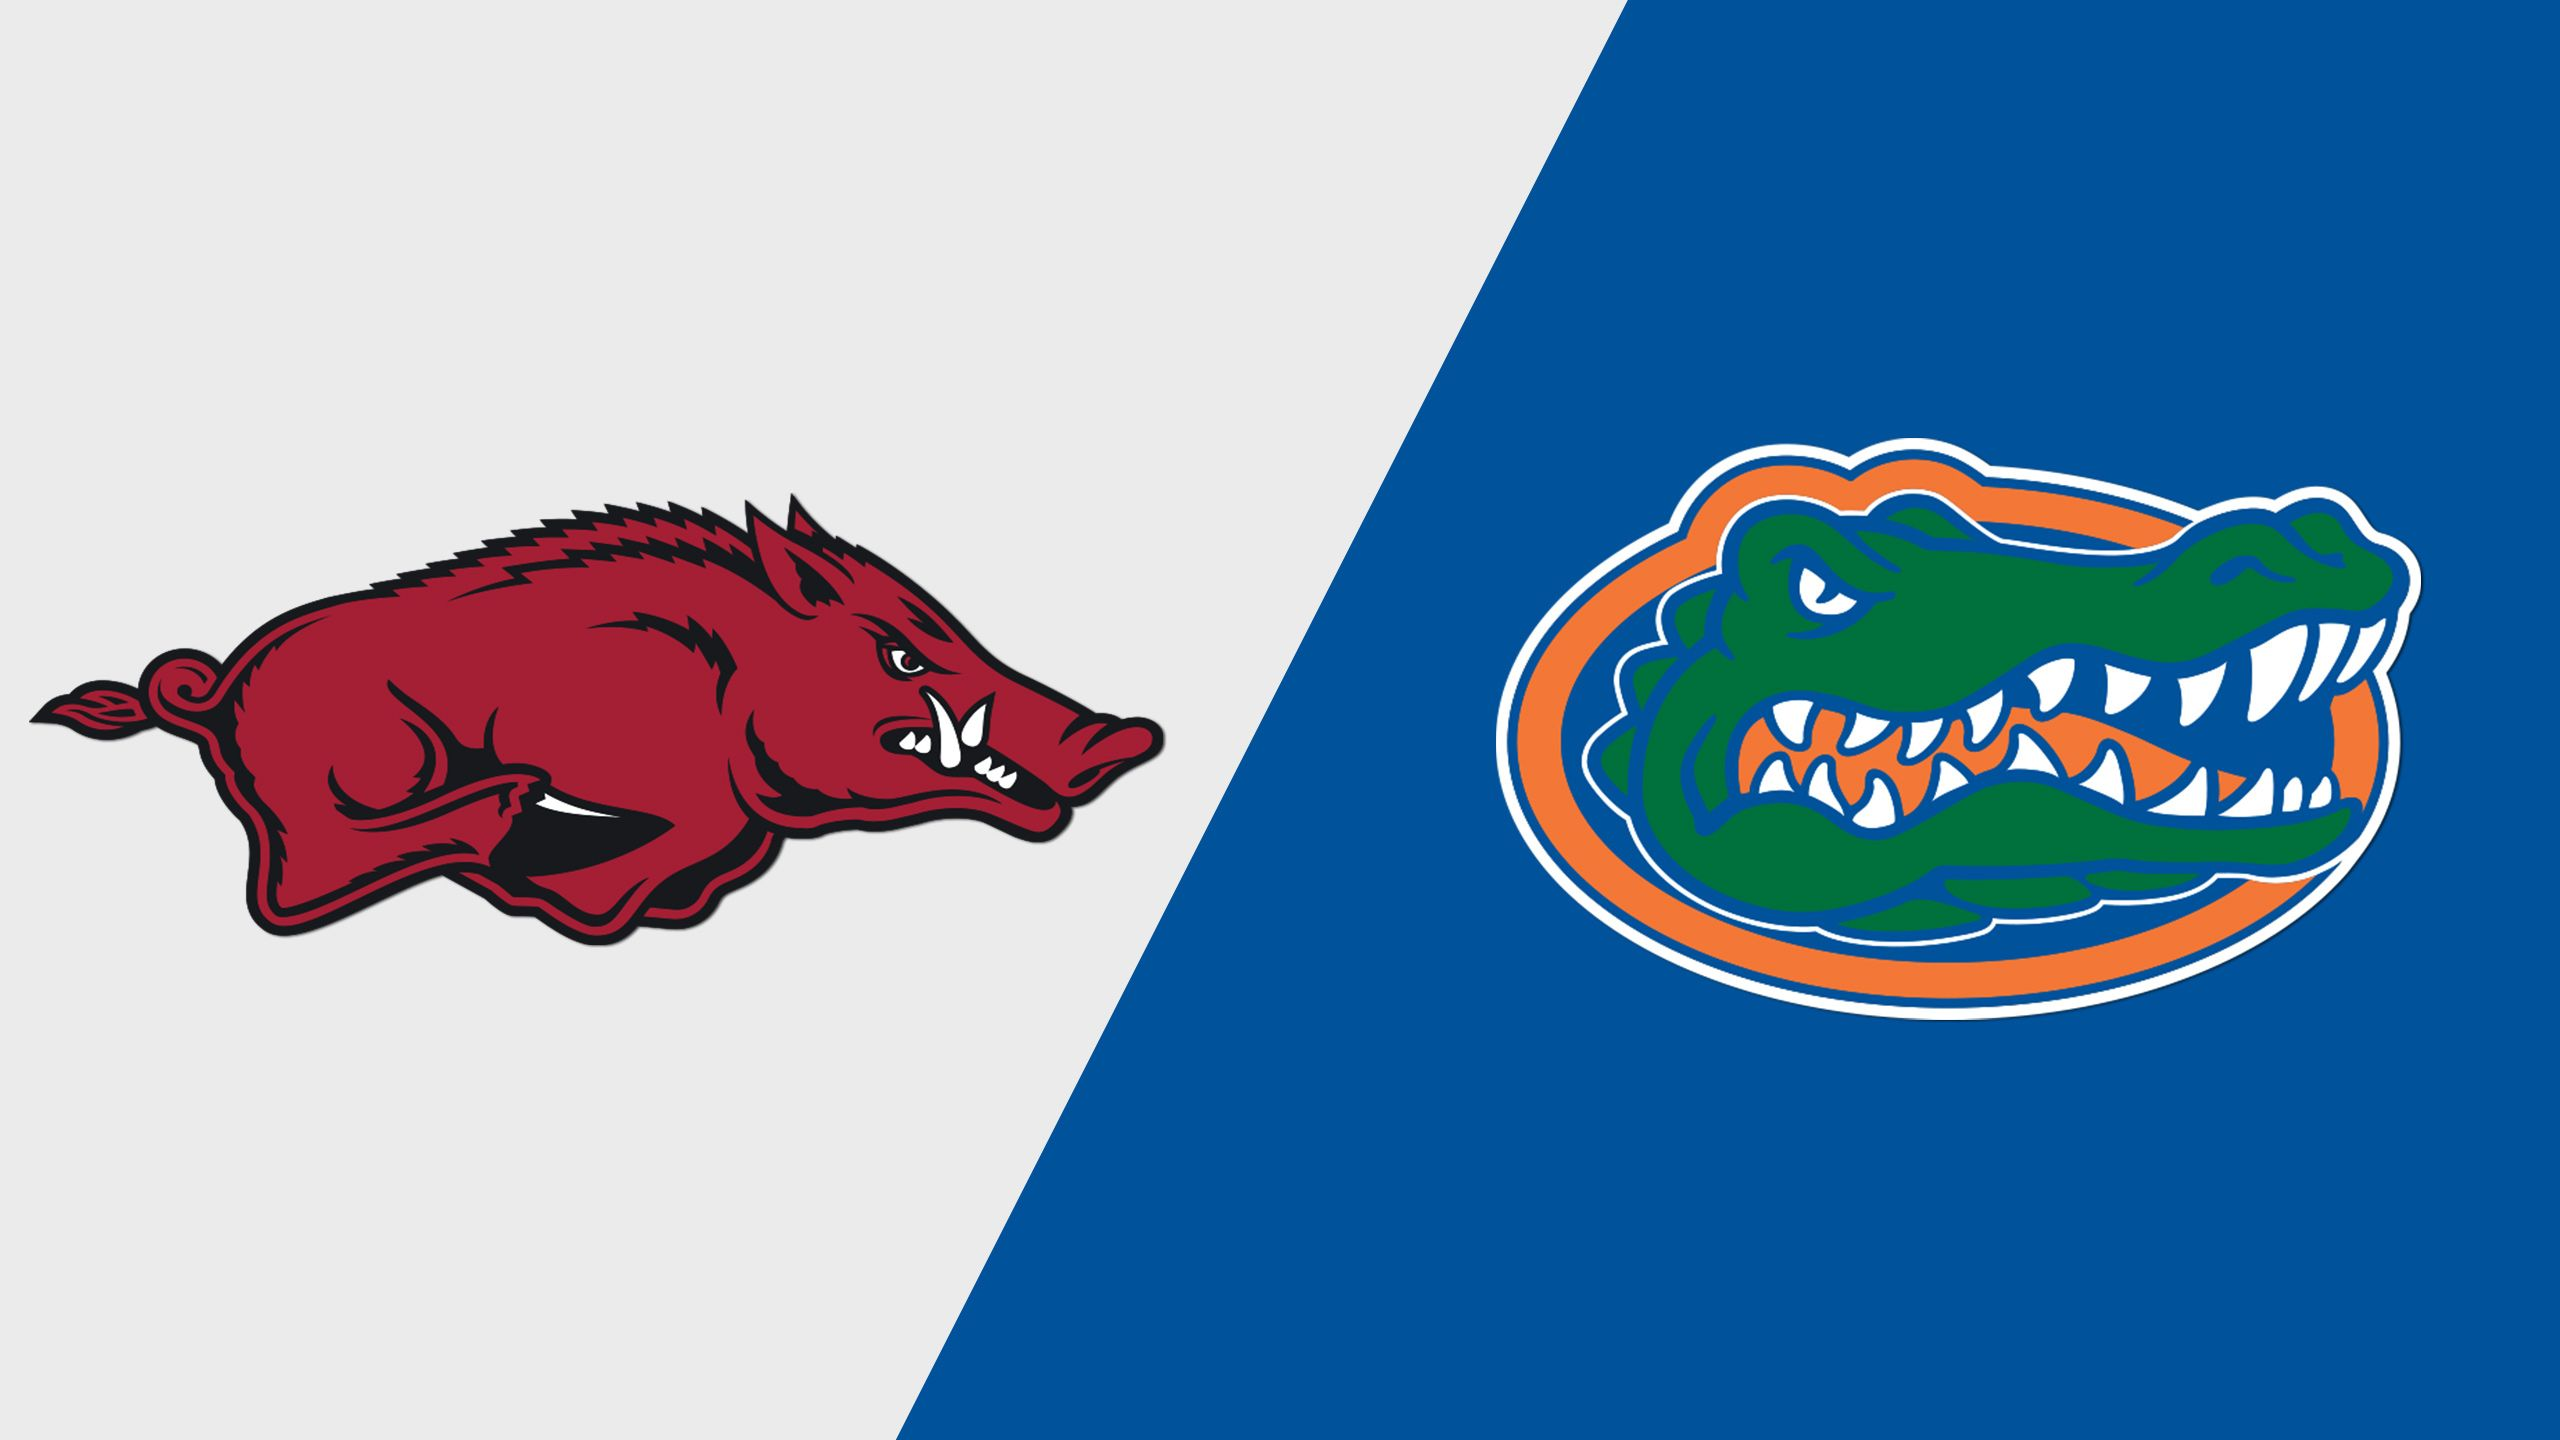 #7 Arkansas vs. #3 Florida (Third Round) (SEC Baseball Tournament)